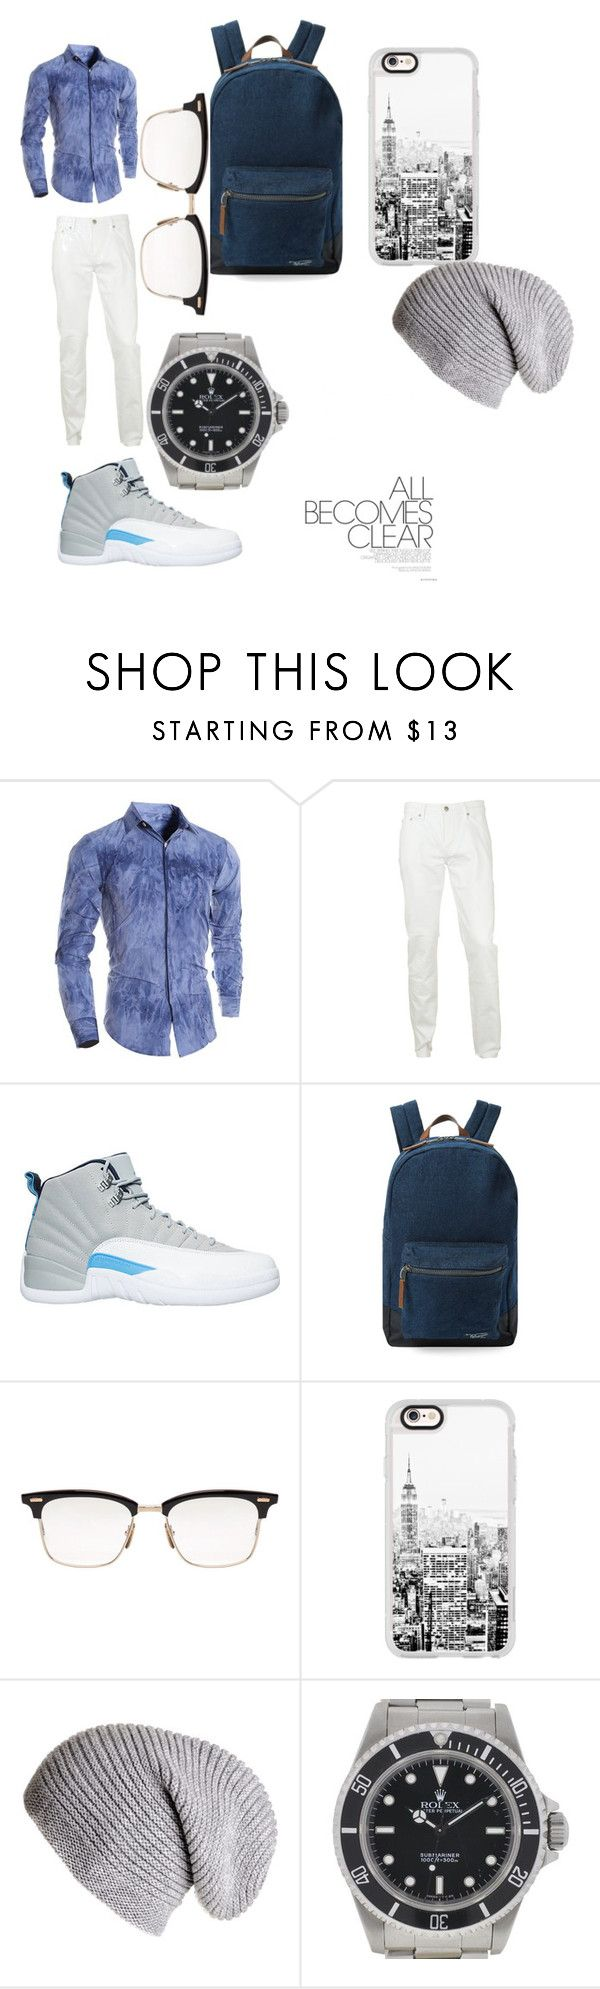 """""""all becomes clear"""" by springcece ❤ liked on Polyvore featuring Burberry, NIKE, Original Penguin, Thom Browne, Casetify, Black, Rolex, men's fashion and menswear"""